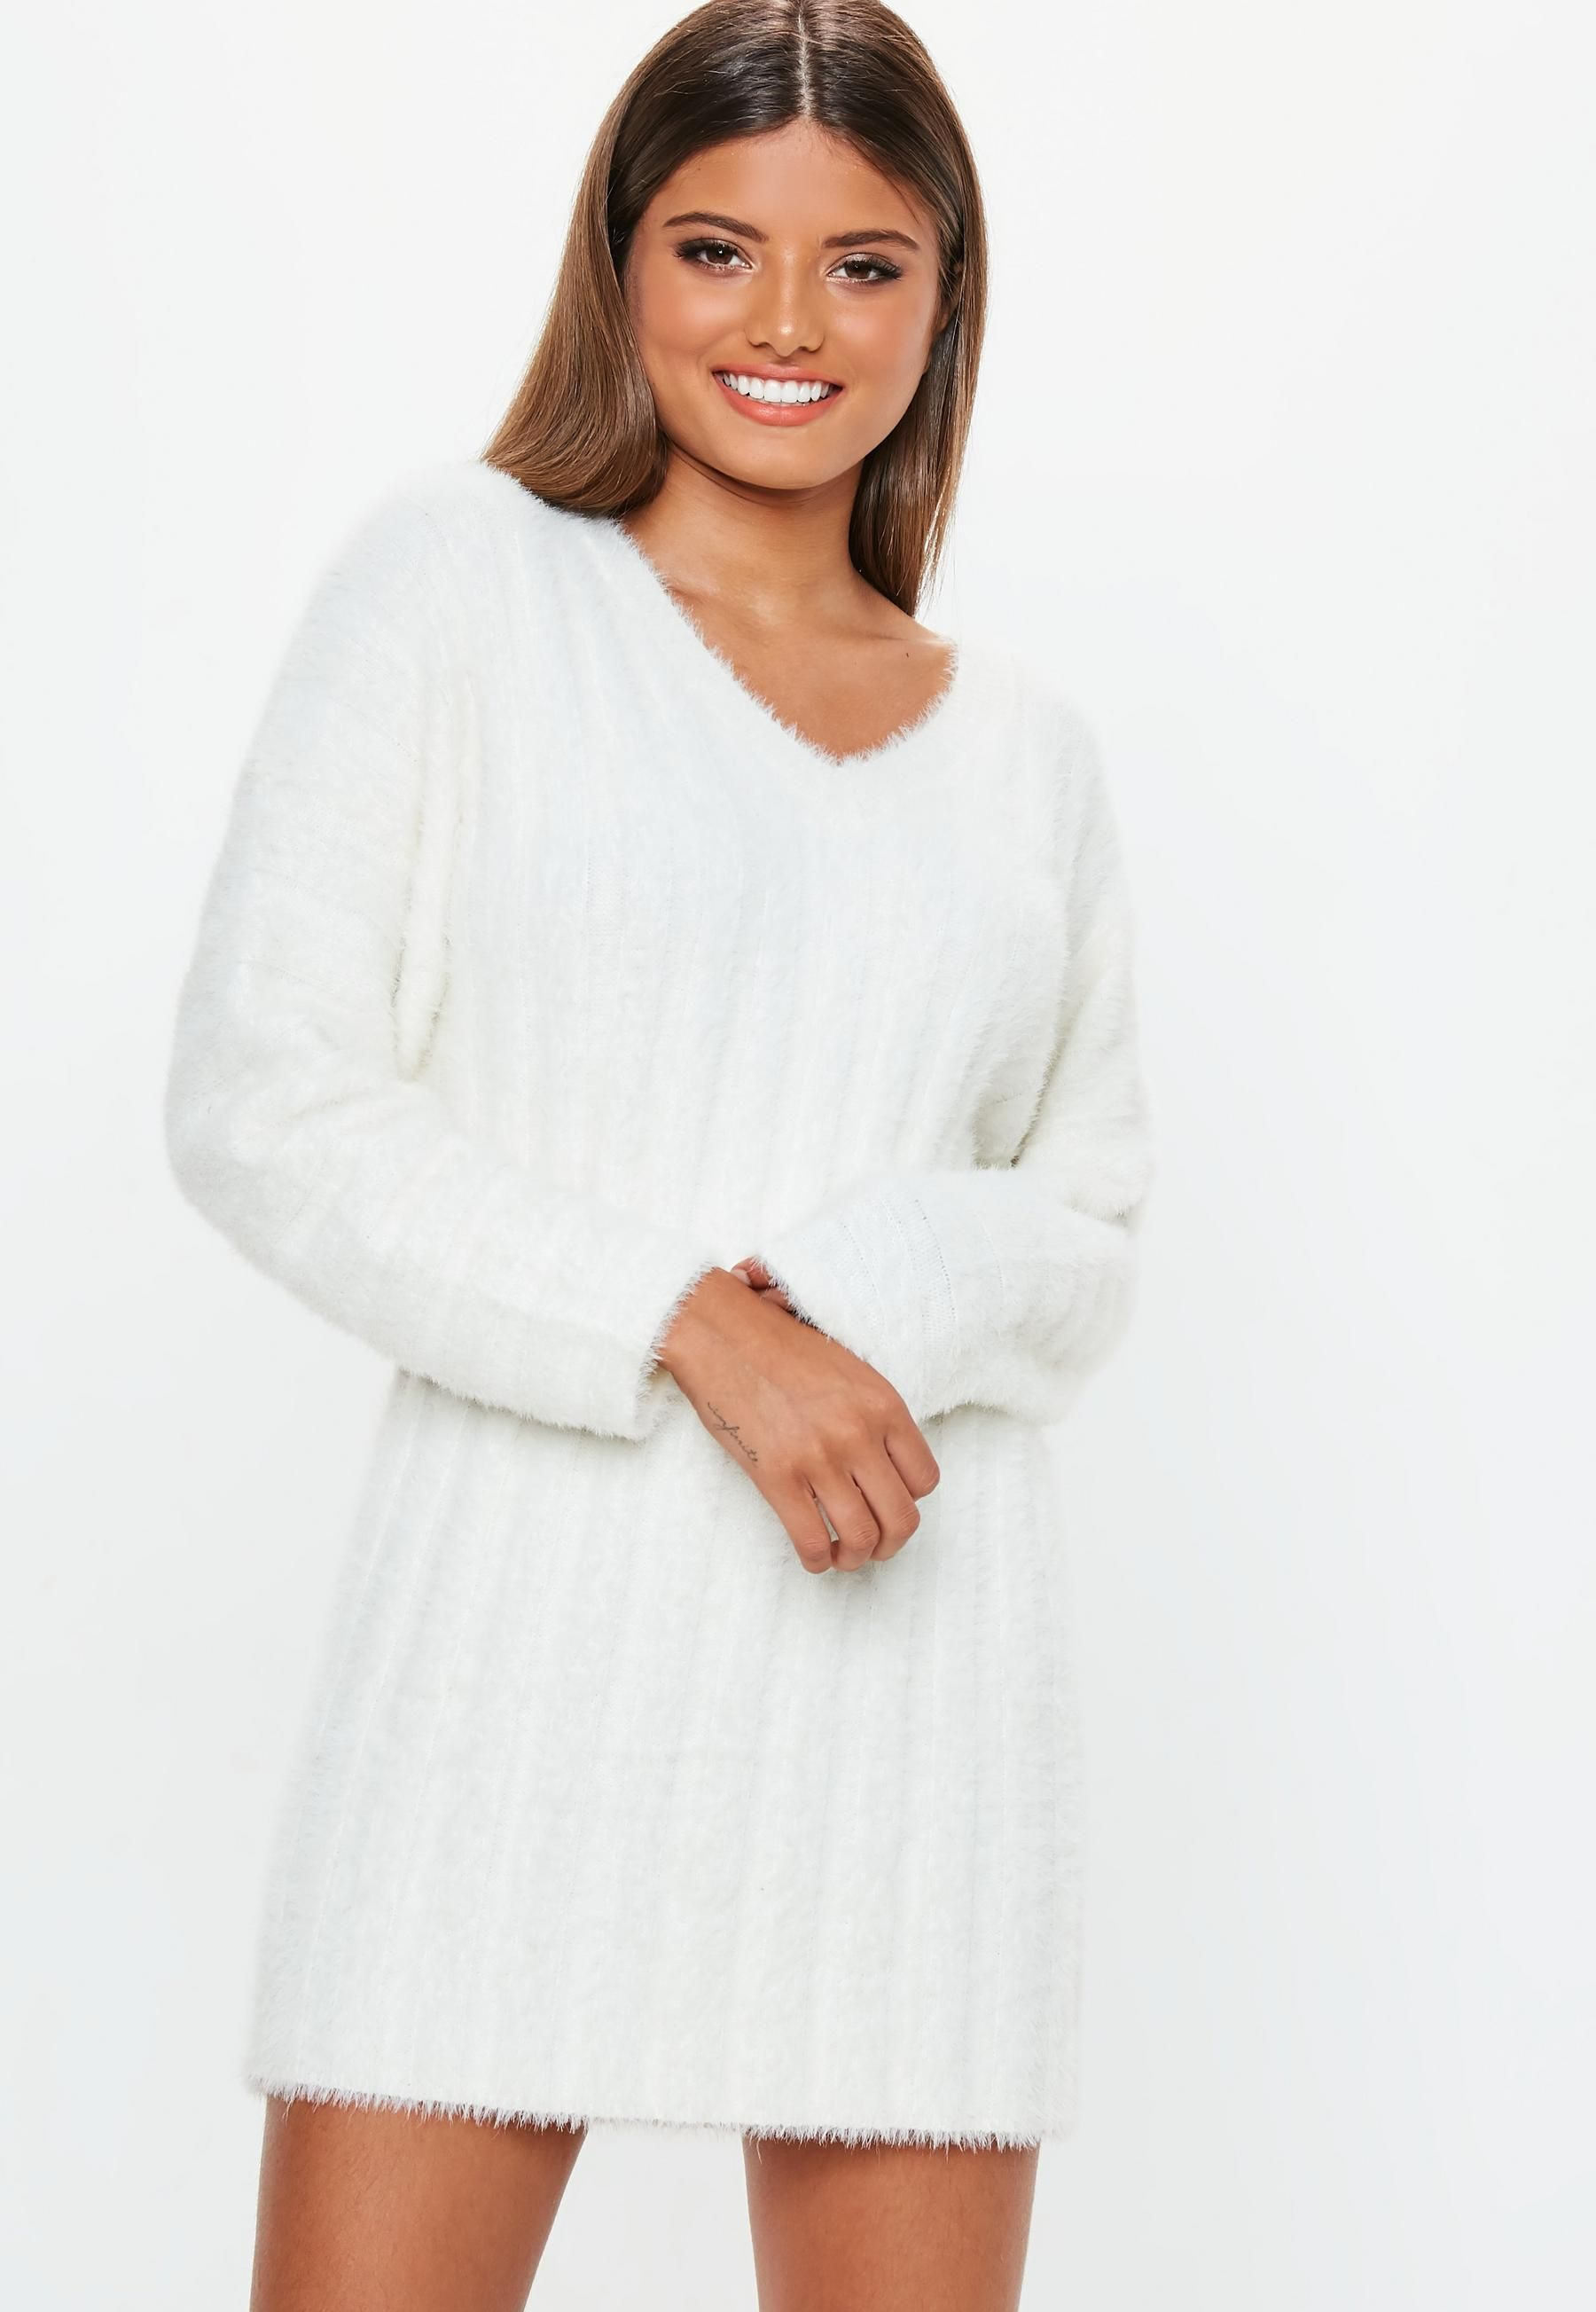 a6fa8bbbef8 Missguided - White Fluffy Ribbed Knitted Jumper Dress in 2019 ...